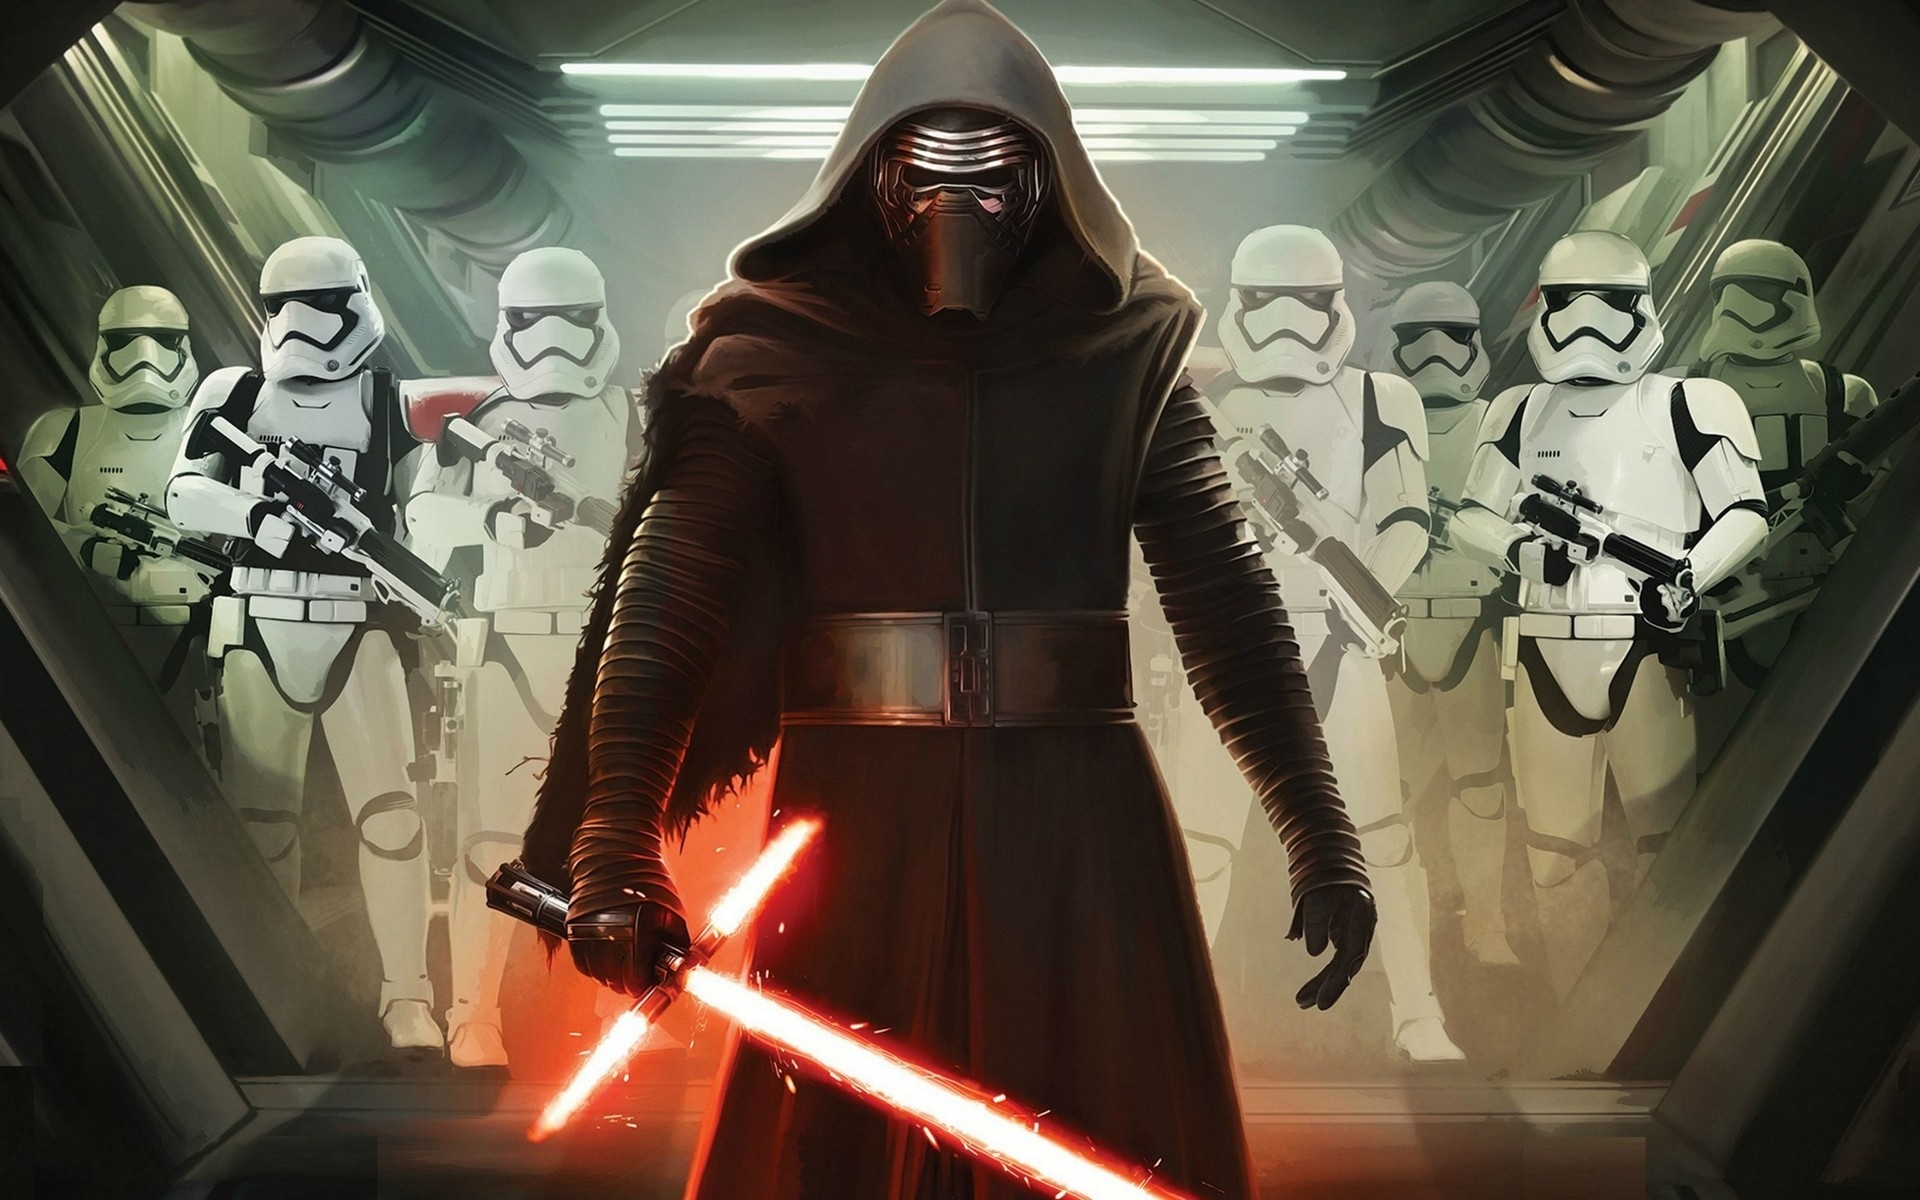 Star Wars VII Darth Vader and Storm Troopers for 1920 x 1200 widescreen resolution